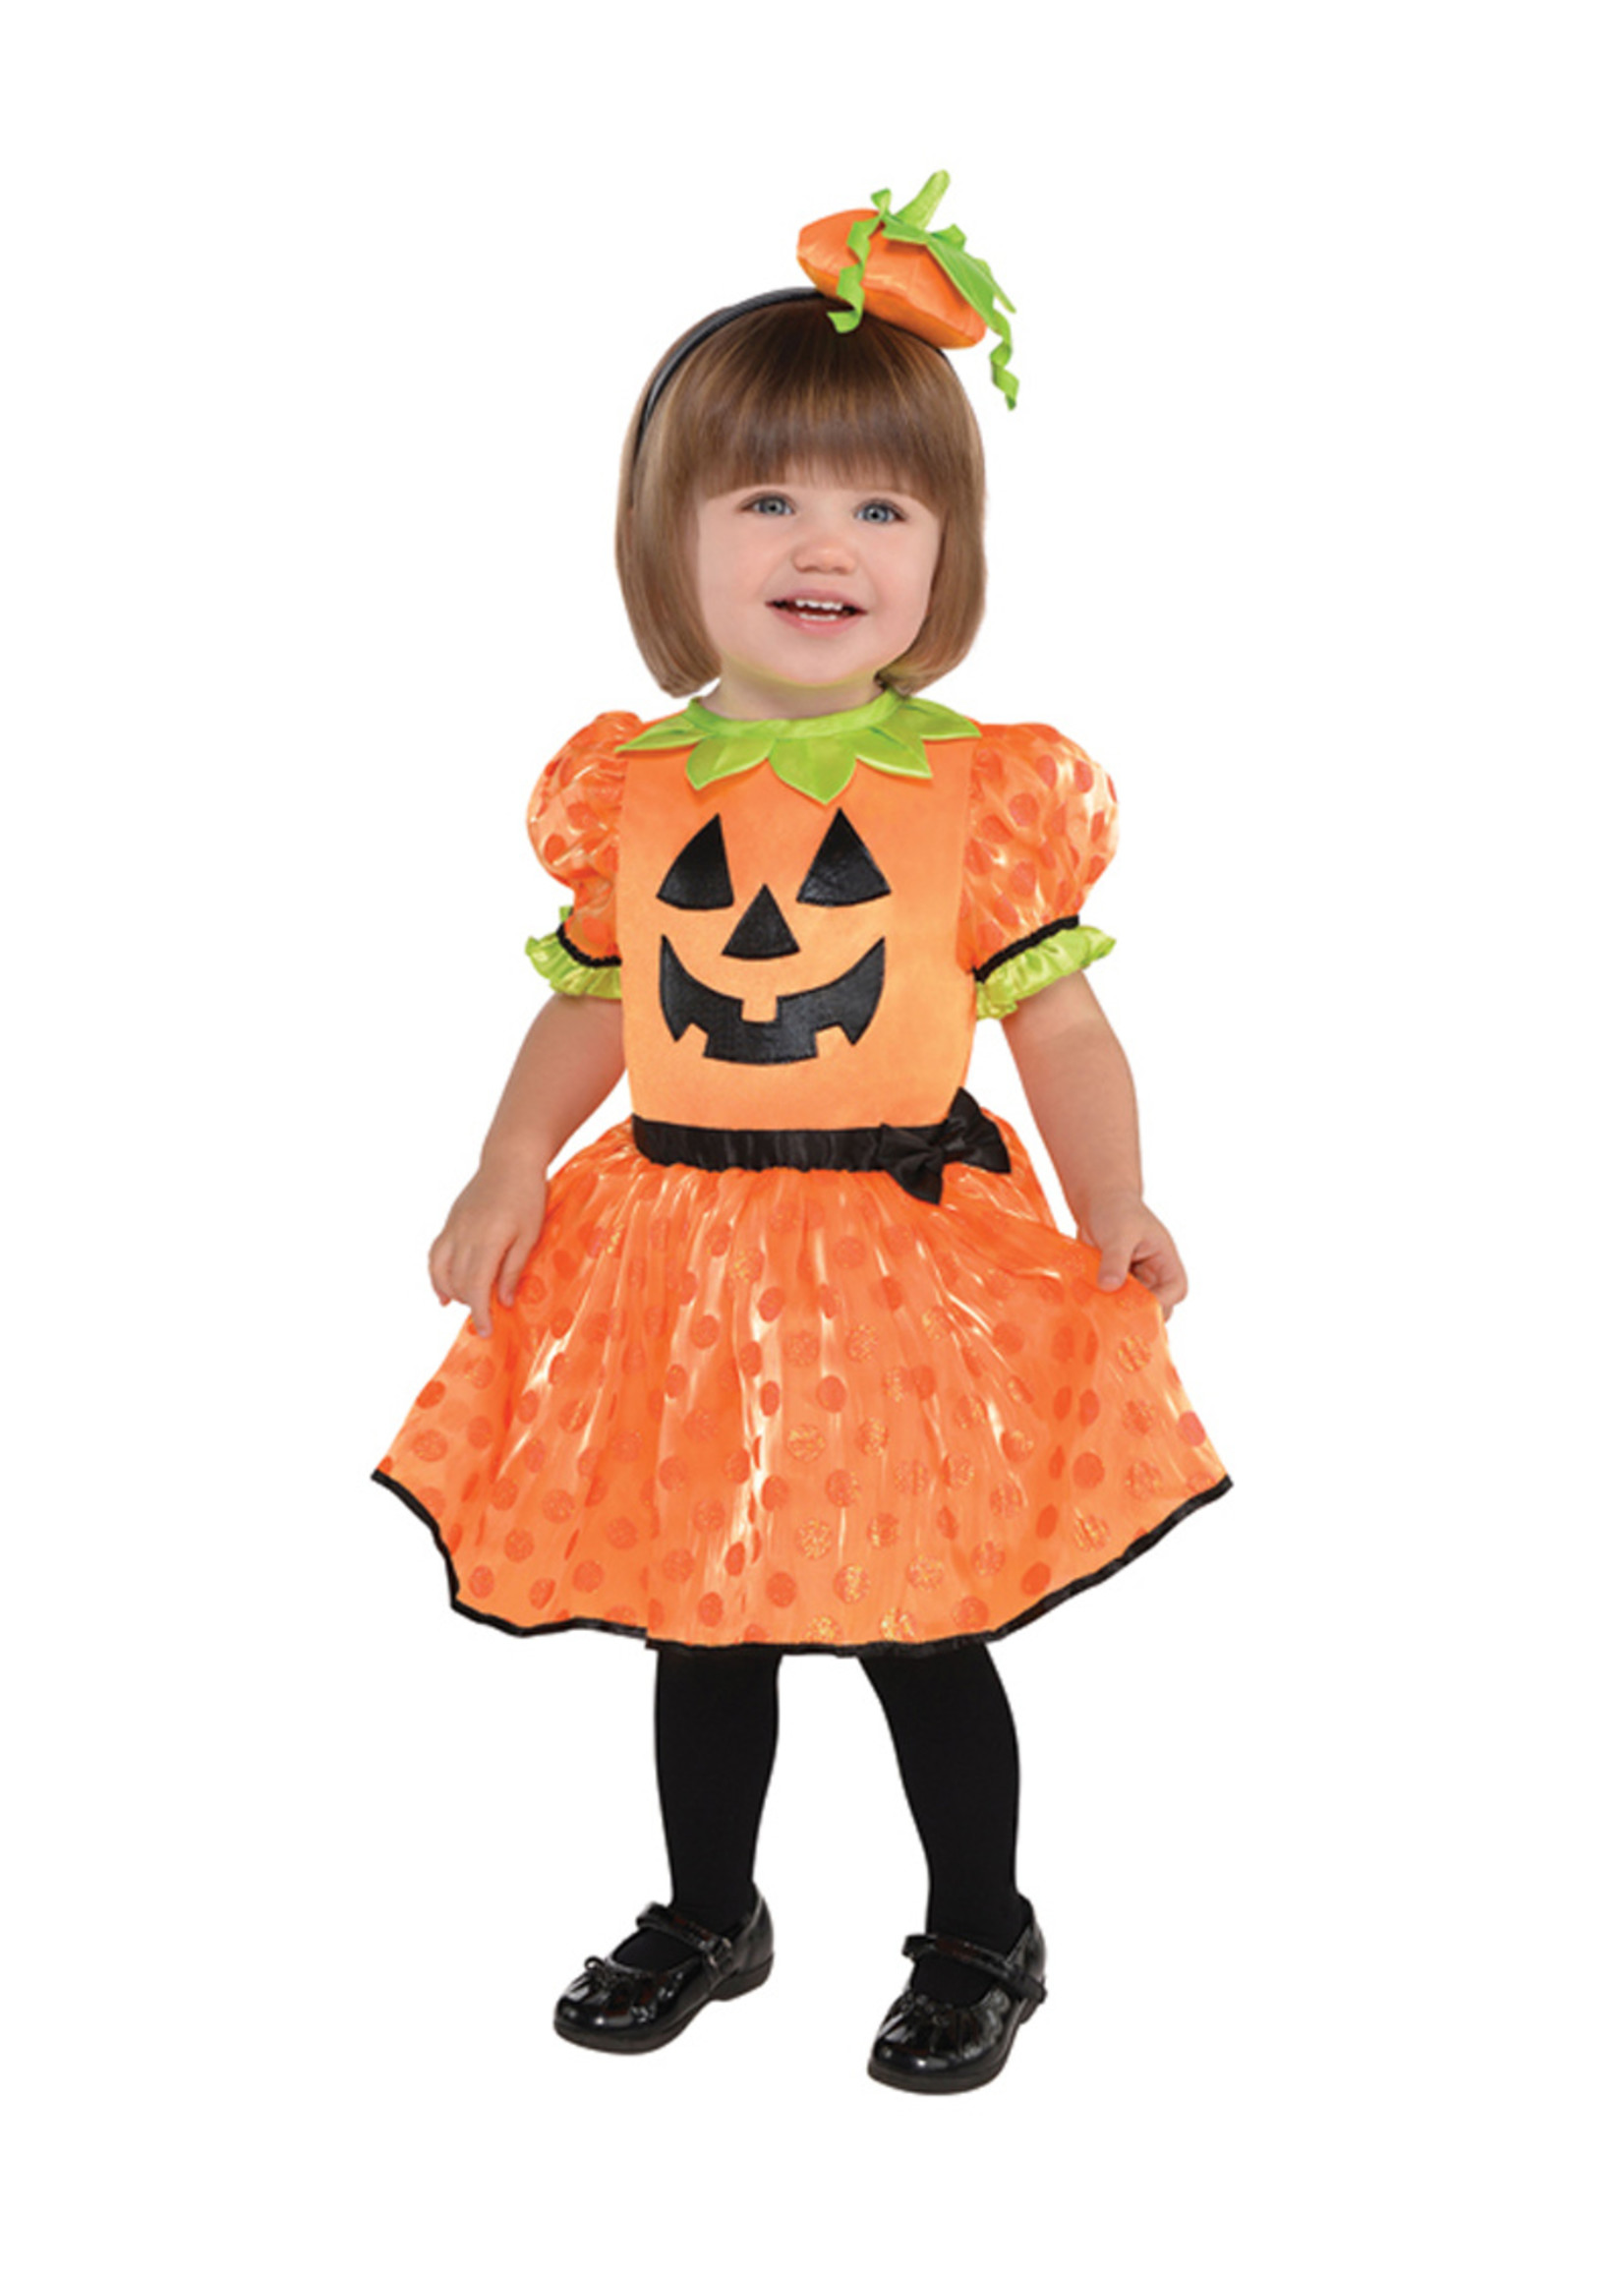 Little Pumpkin Costumes - Infant